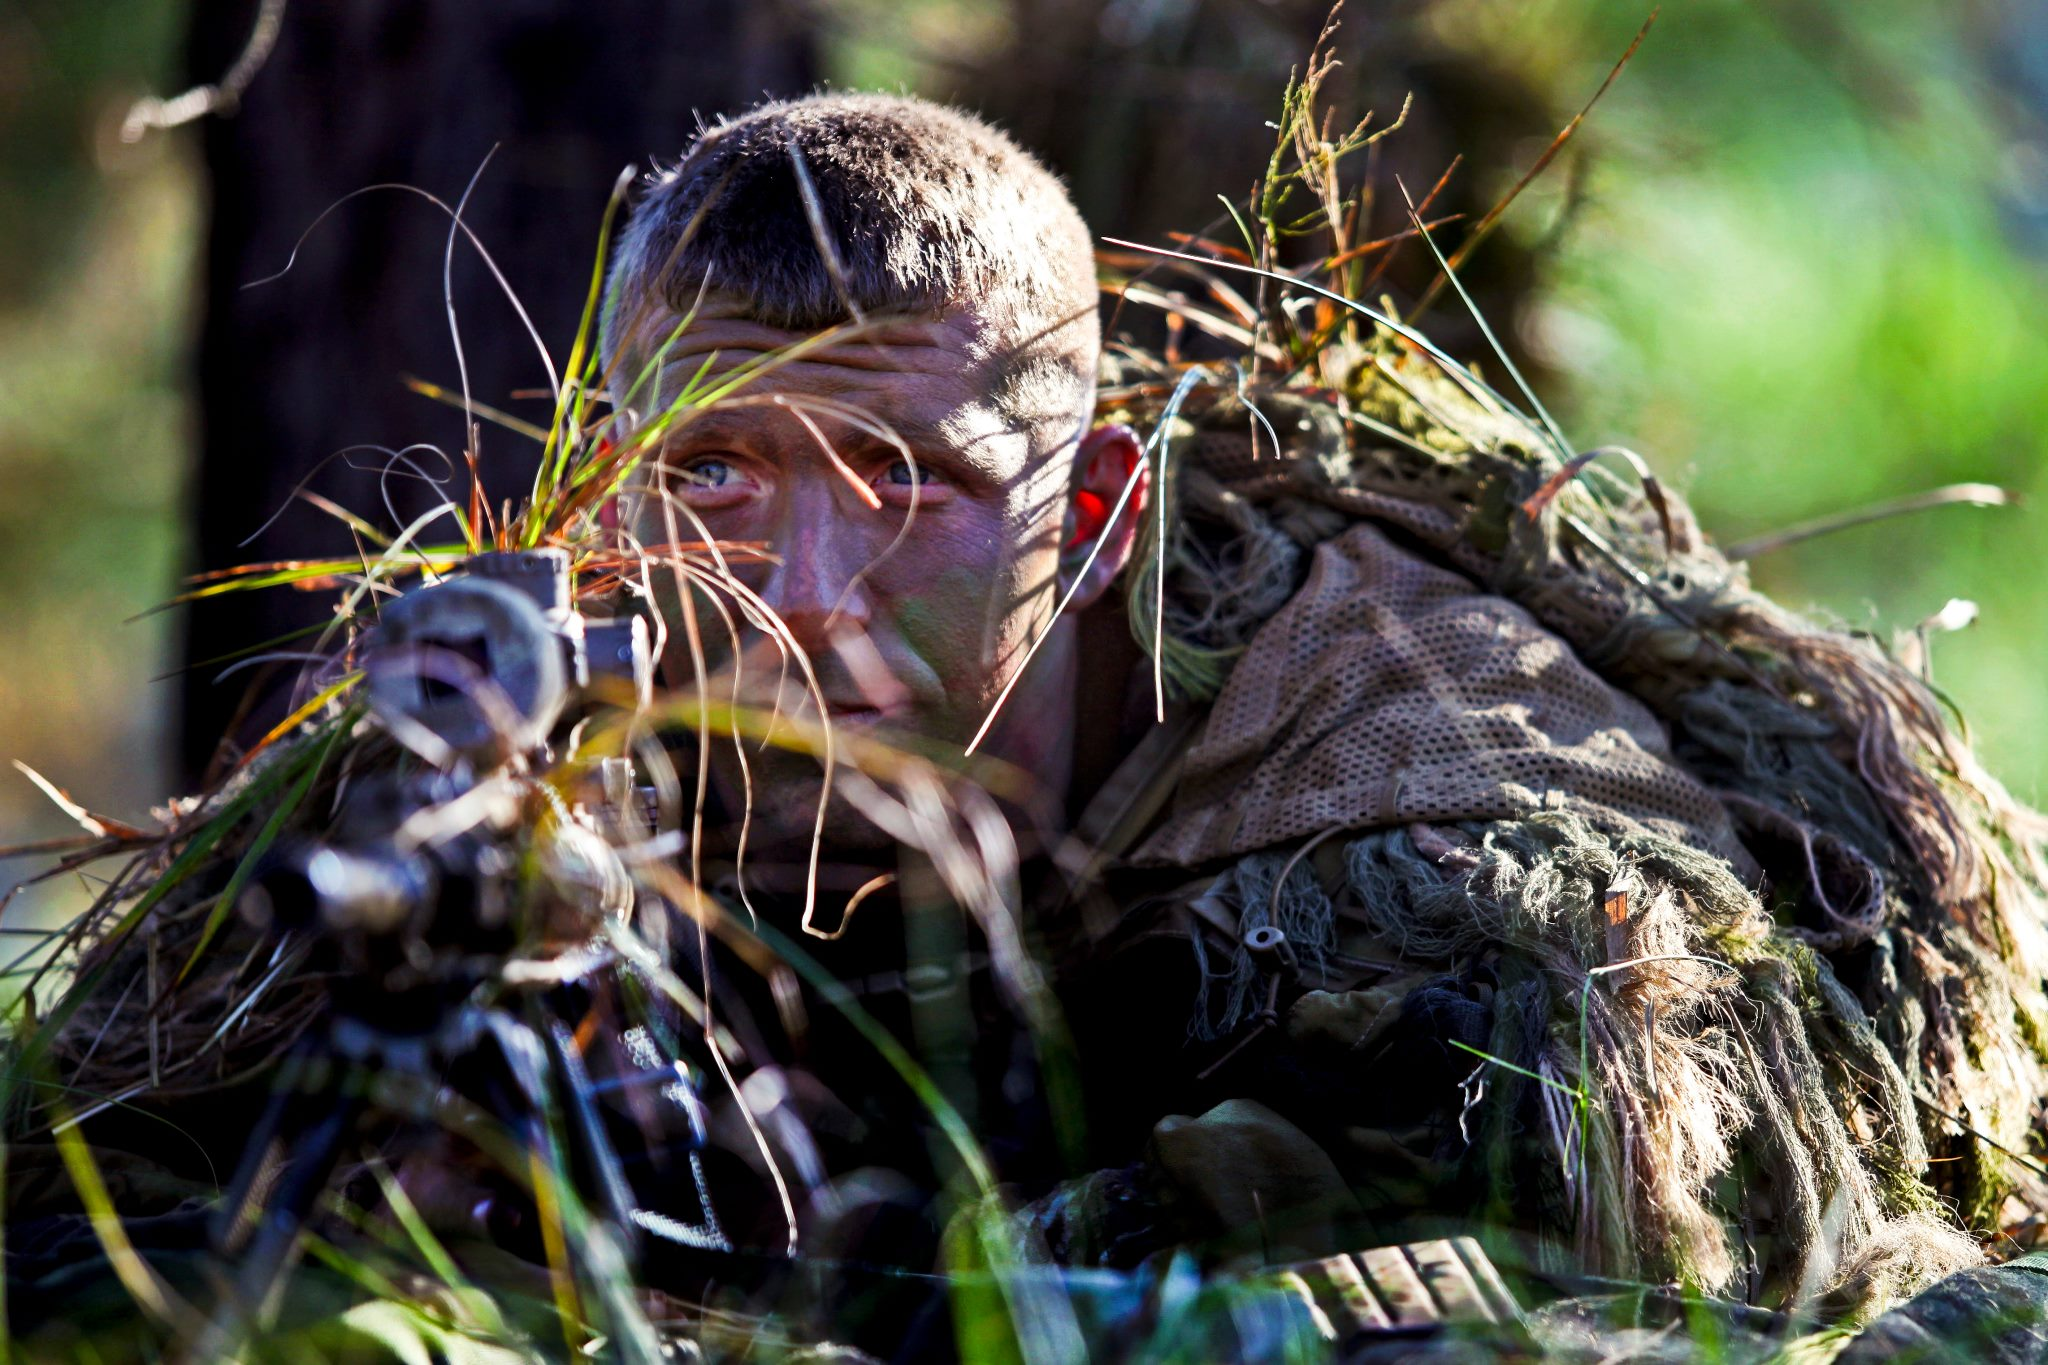 Guns and Military Army Staff Sgt. Mathew Fox, 3rd Infantry Division, waits to engage a target in the live-fire stalk event during the 2012 International Sniper Competition at the U.S. Army Sniper School on US Army Fort Benning Nov. 3.